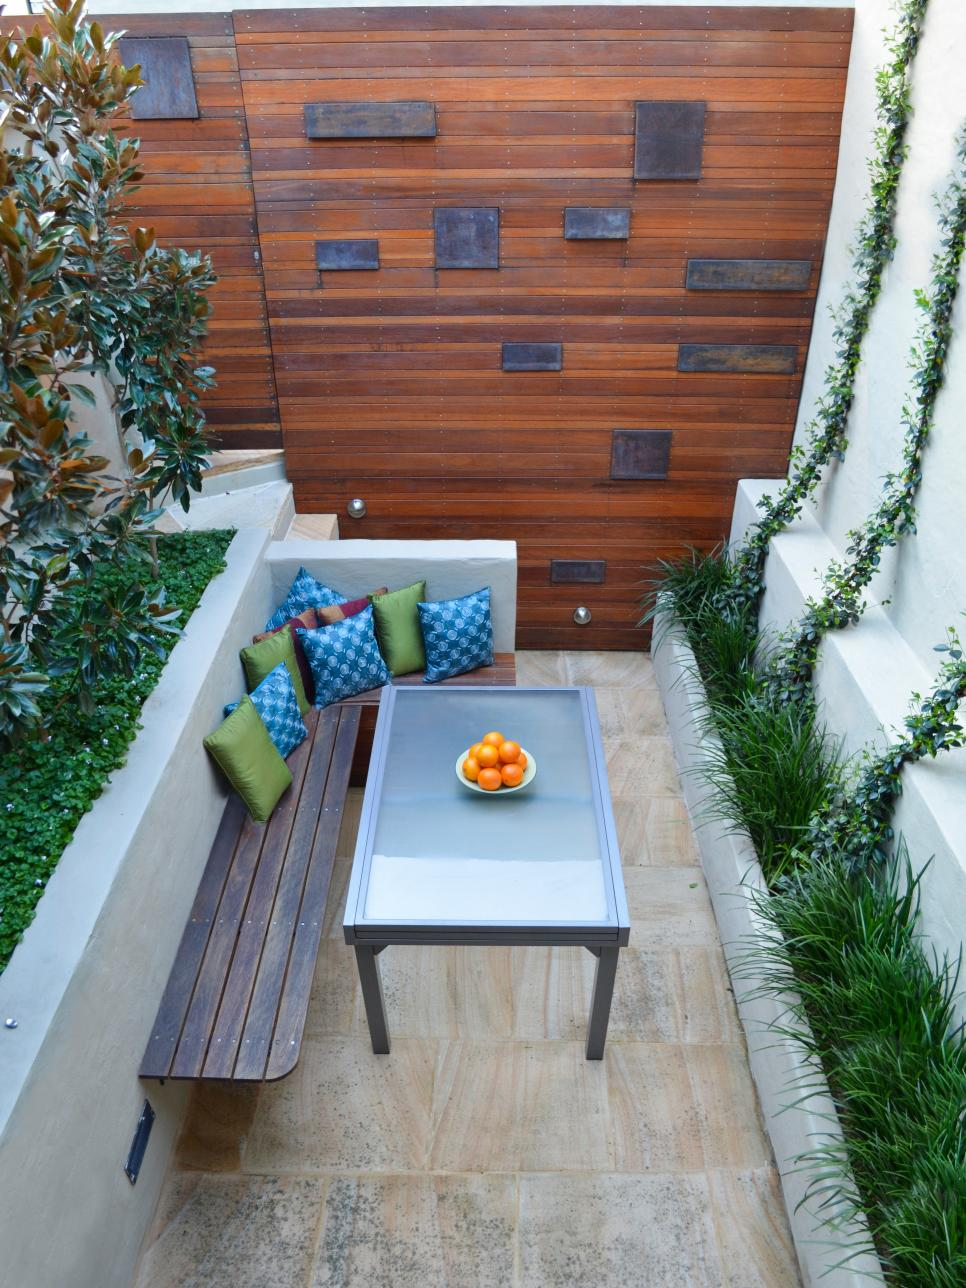 Pictures and Tips for Small Patios | HGTV on Small City Patio Ideas id=50935